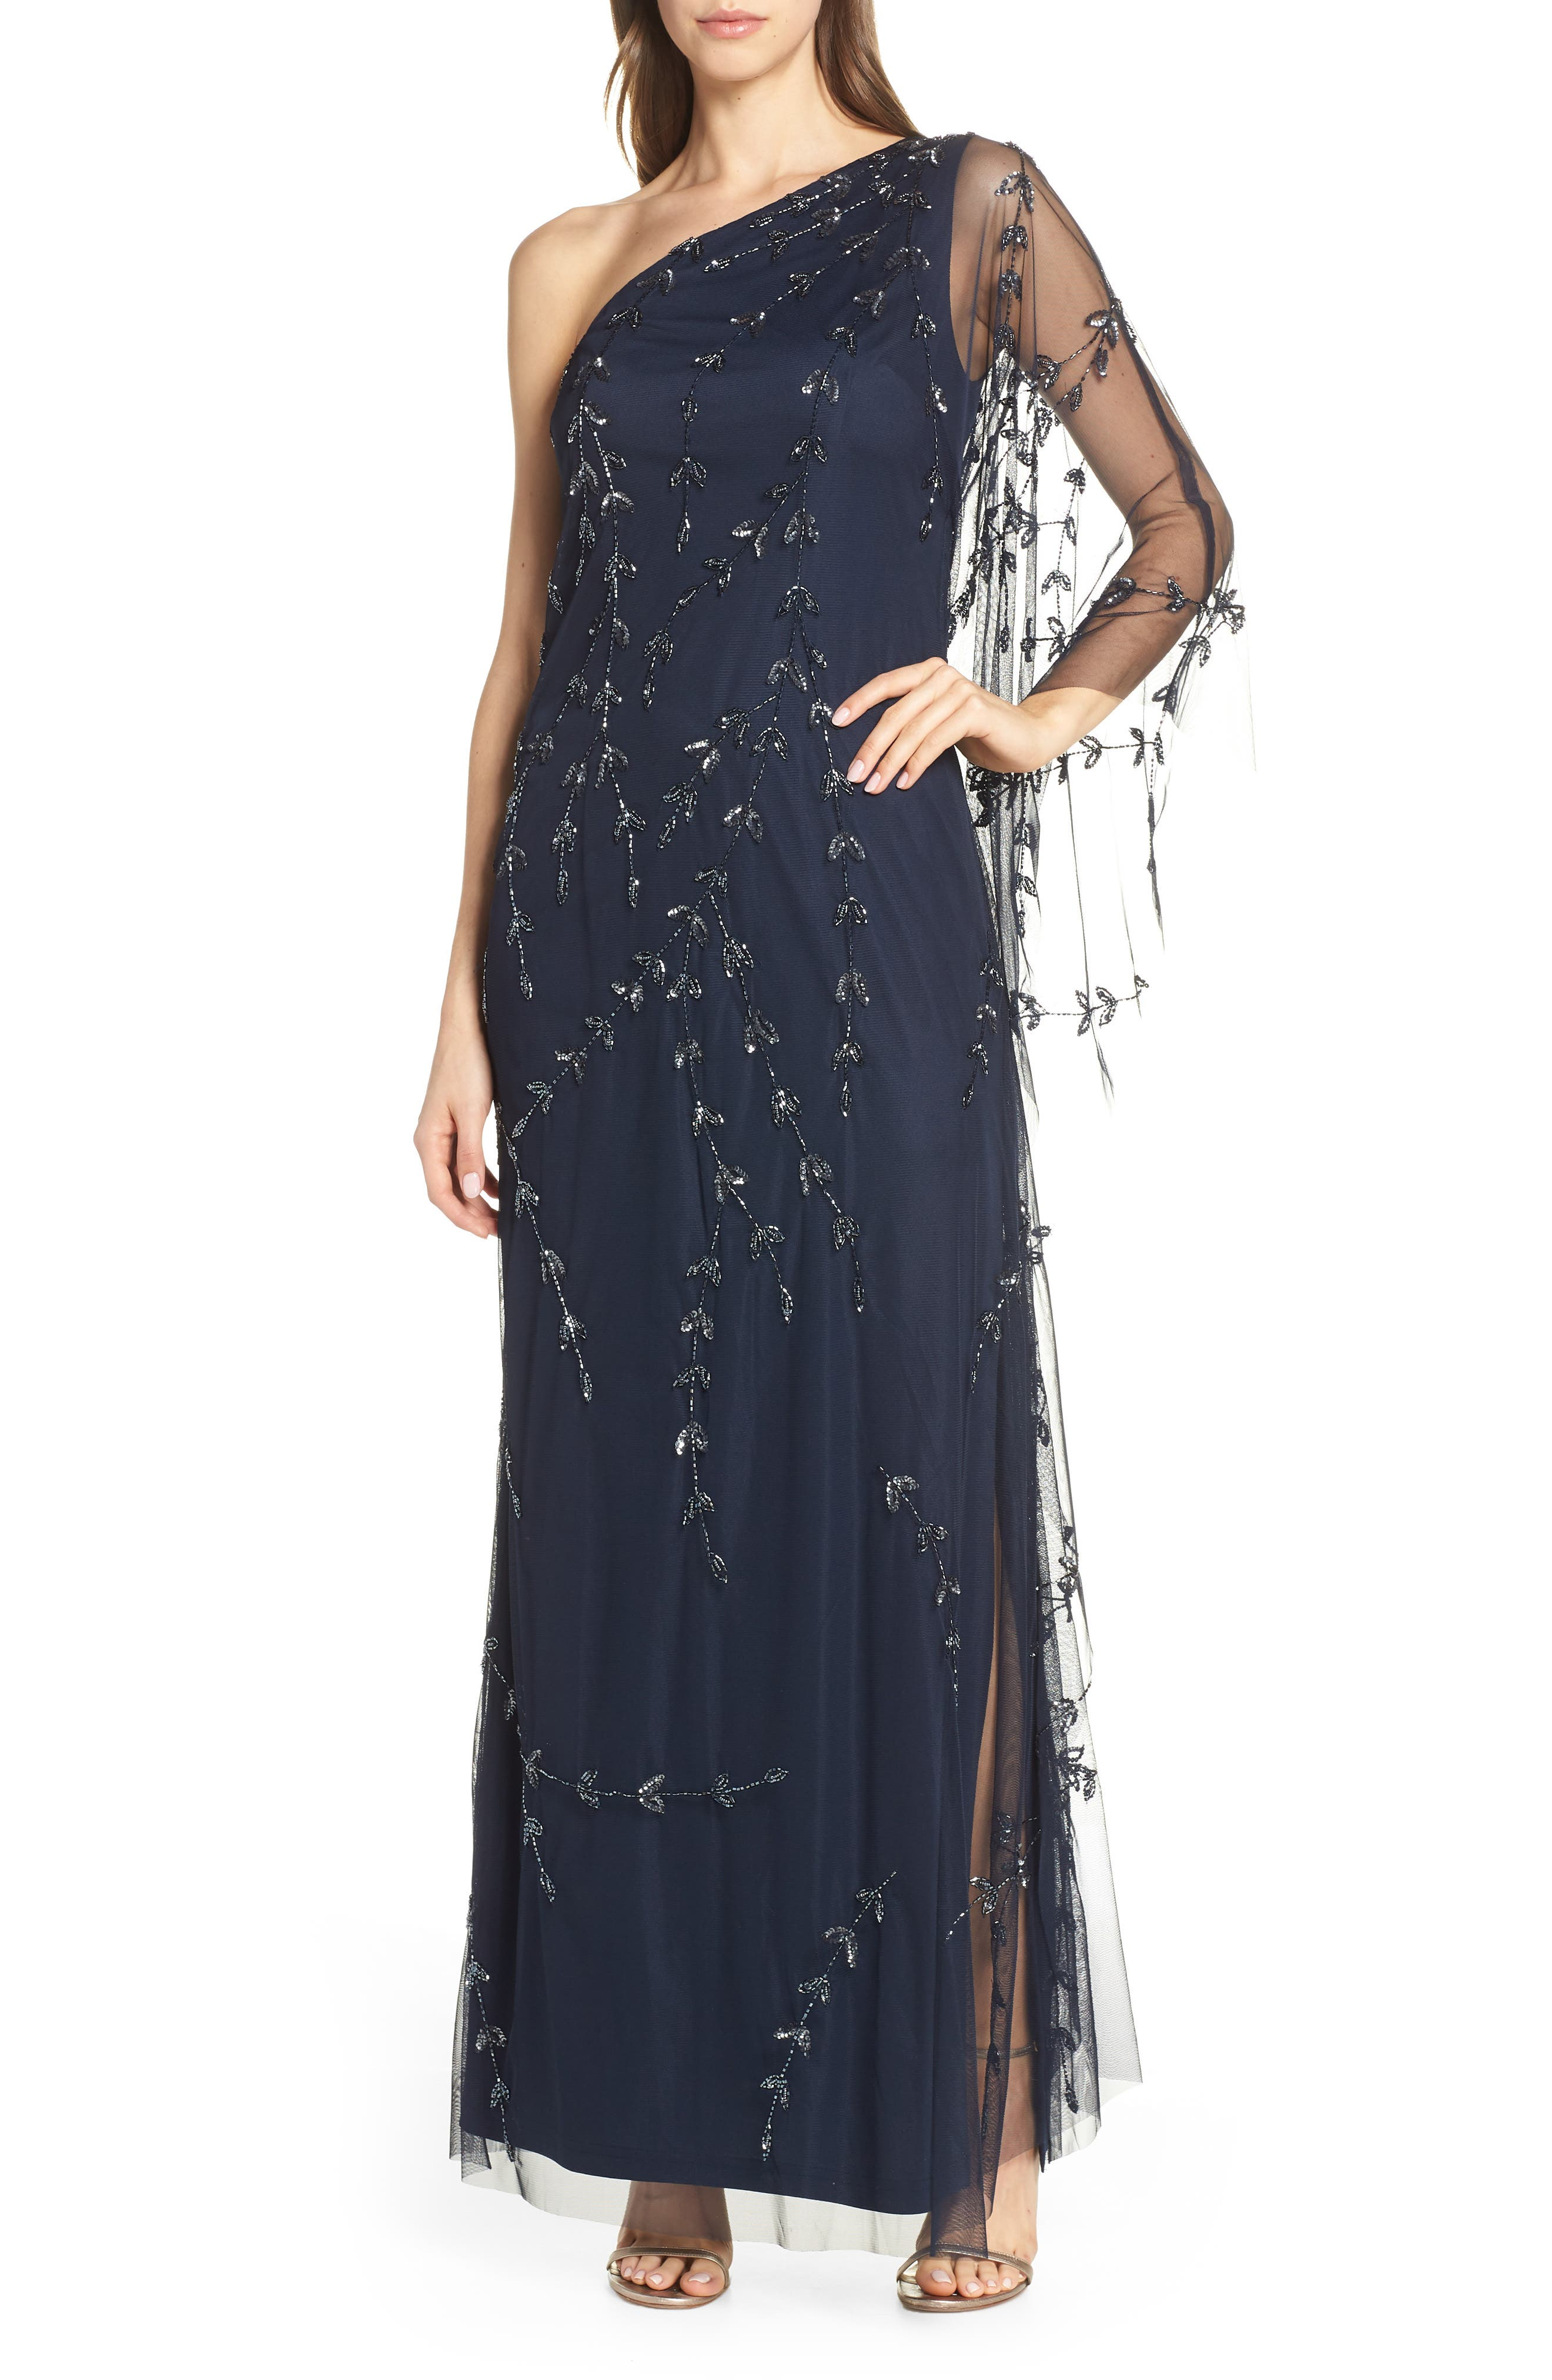 Adrianna Papell Beaded One-Shoulder Evening Dress, Blue